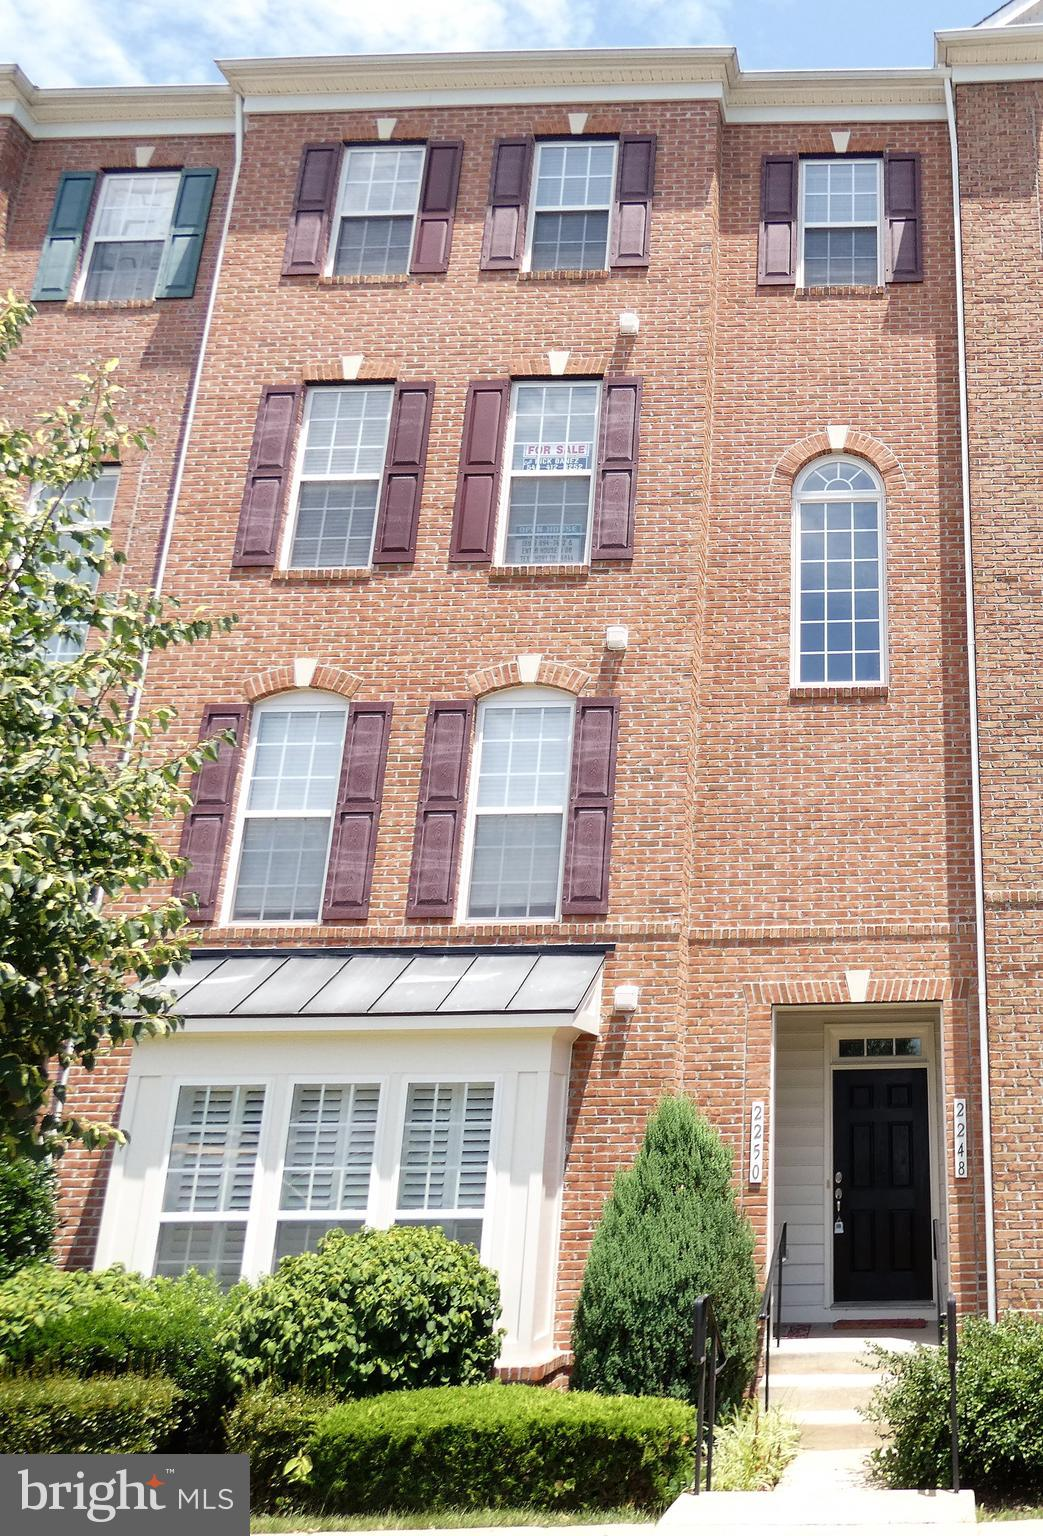 Luxury Living Just Right! 3 bed 2.5 bath Upper Floor Town Home & 1 Car Garage. Gourmet Kitchen with